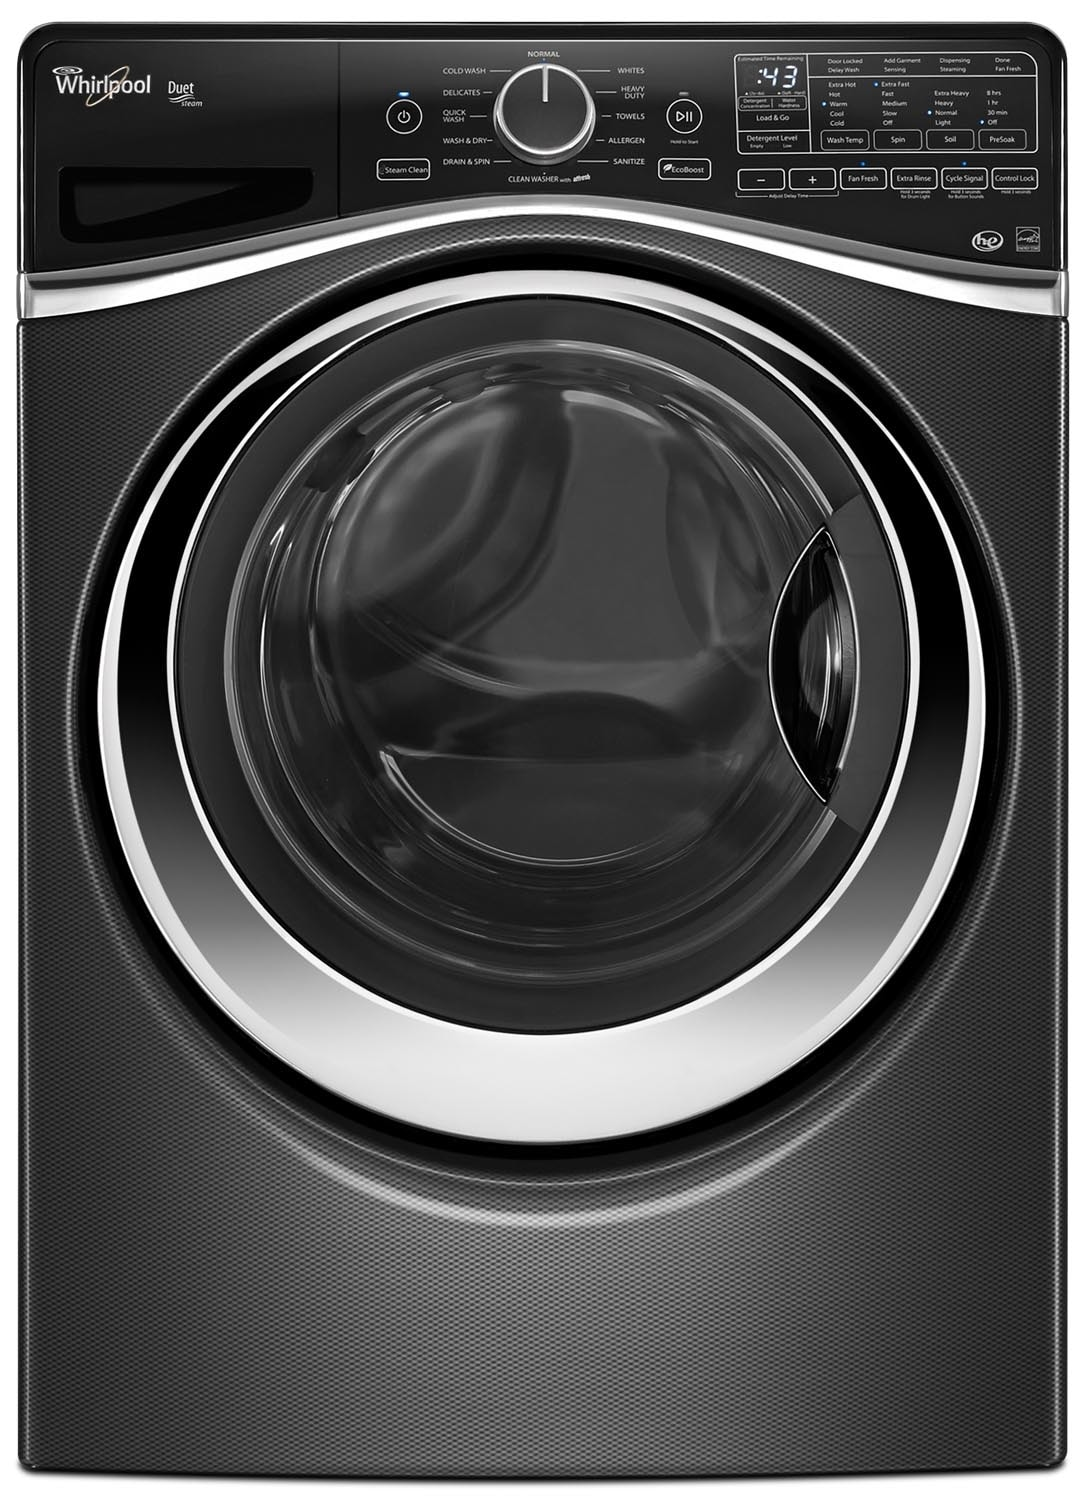 Whirlpool Black Diamond Front-Load Washer (5.2 Cu. Ft. IEC) - WFW97HEDBD